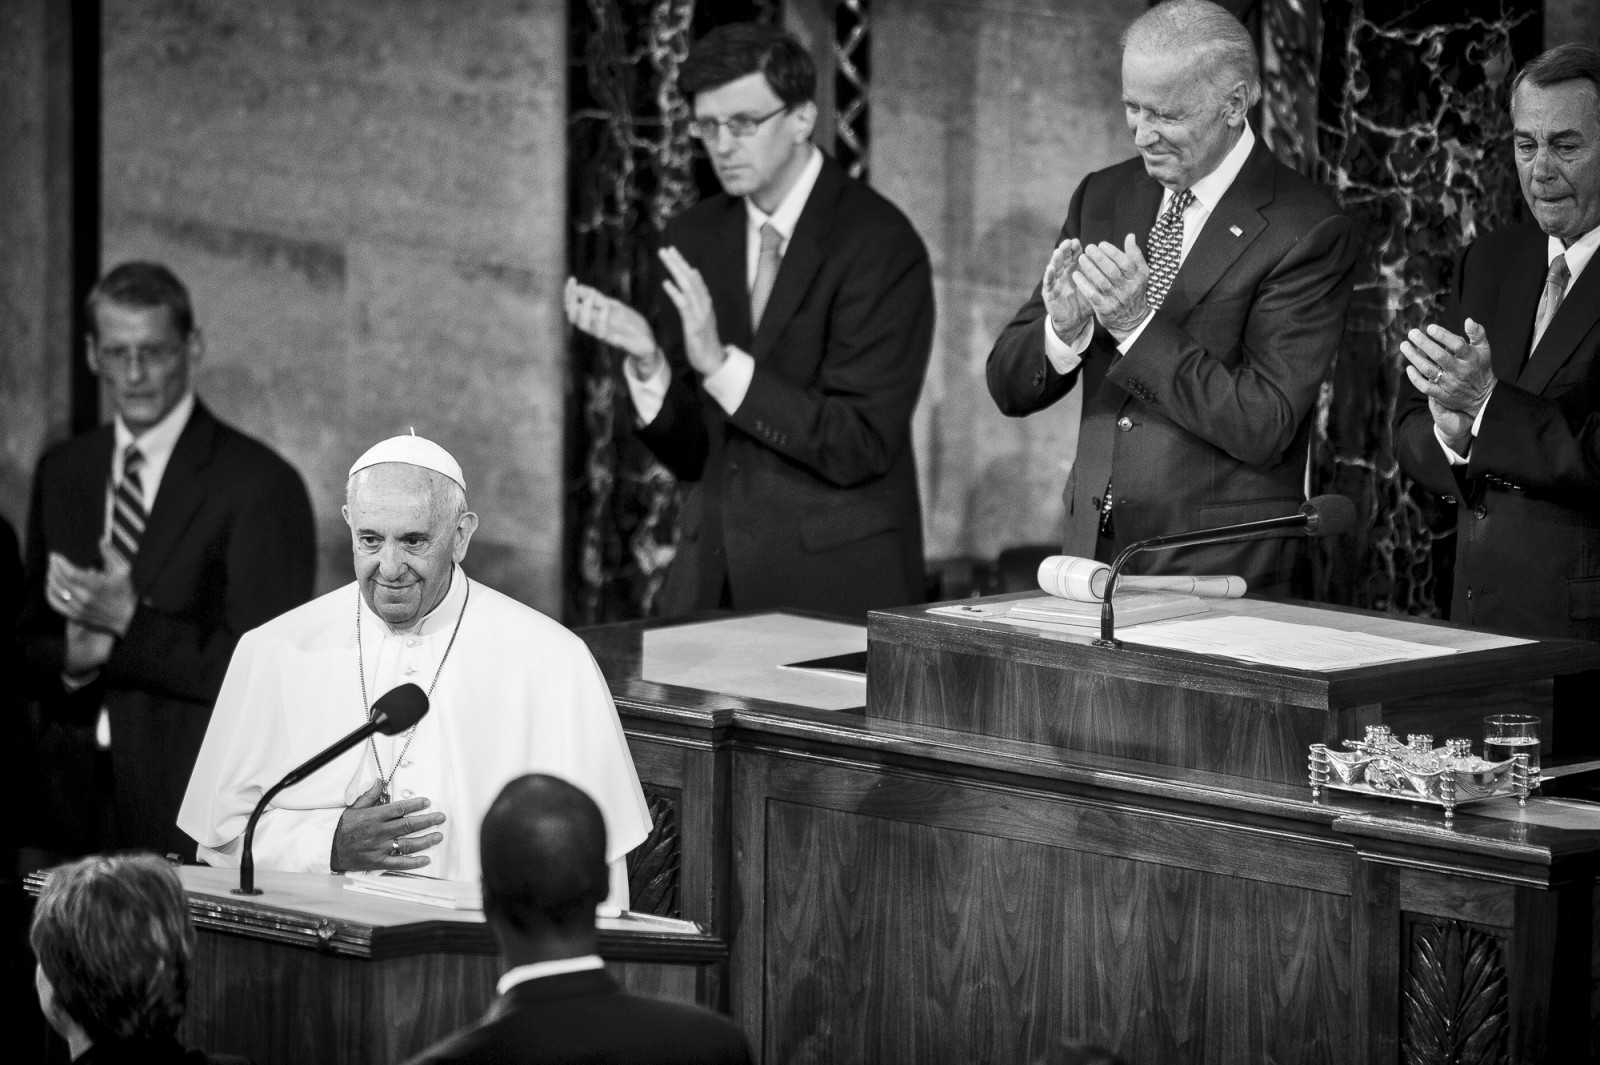 Pope Francis is acknowledged as he arrives in the chamber of the House of Representatives to speak to a joint meeting of Congress at the U.S. Capitol in Washington, District of Columbia, U.S., on Thursday, Sept. 24, 2015. Credit: Pete Marovich/Bloomberg